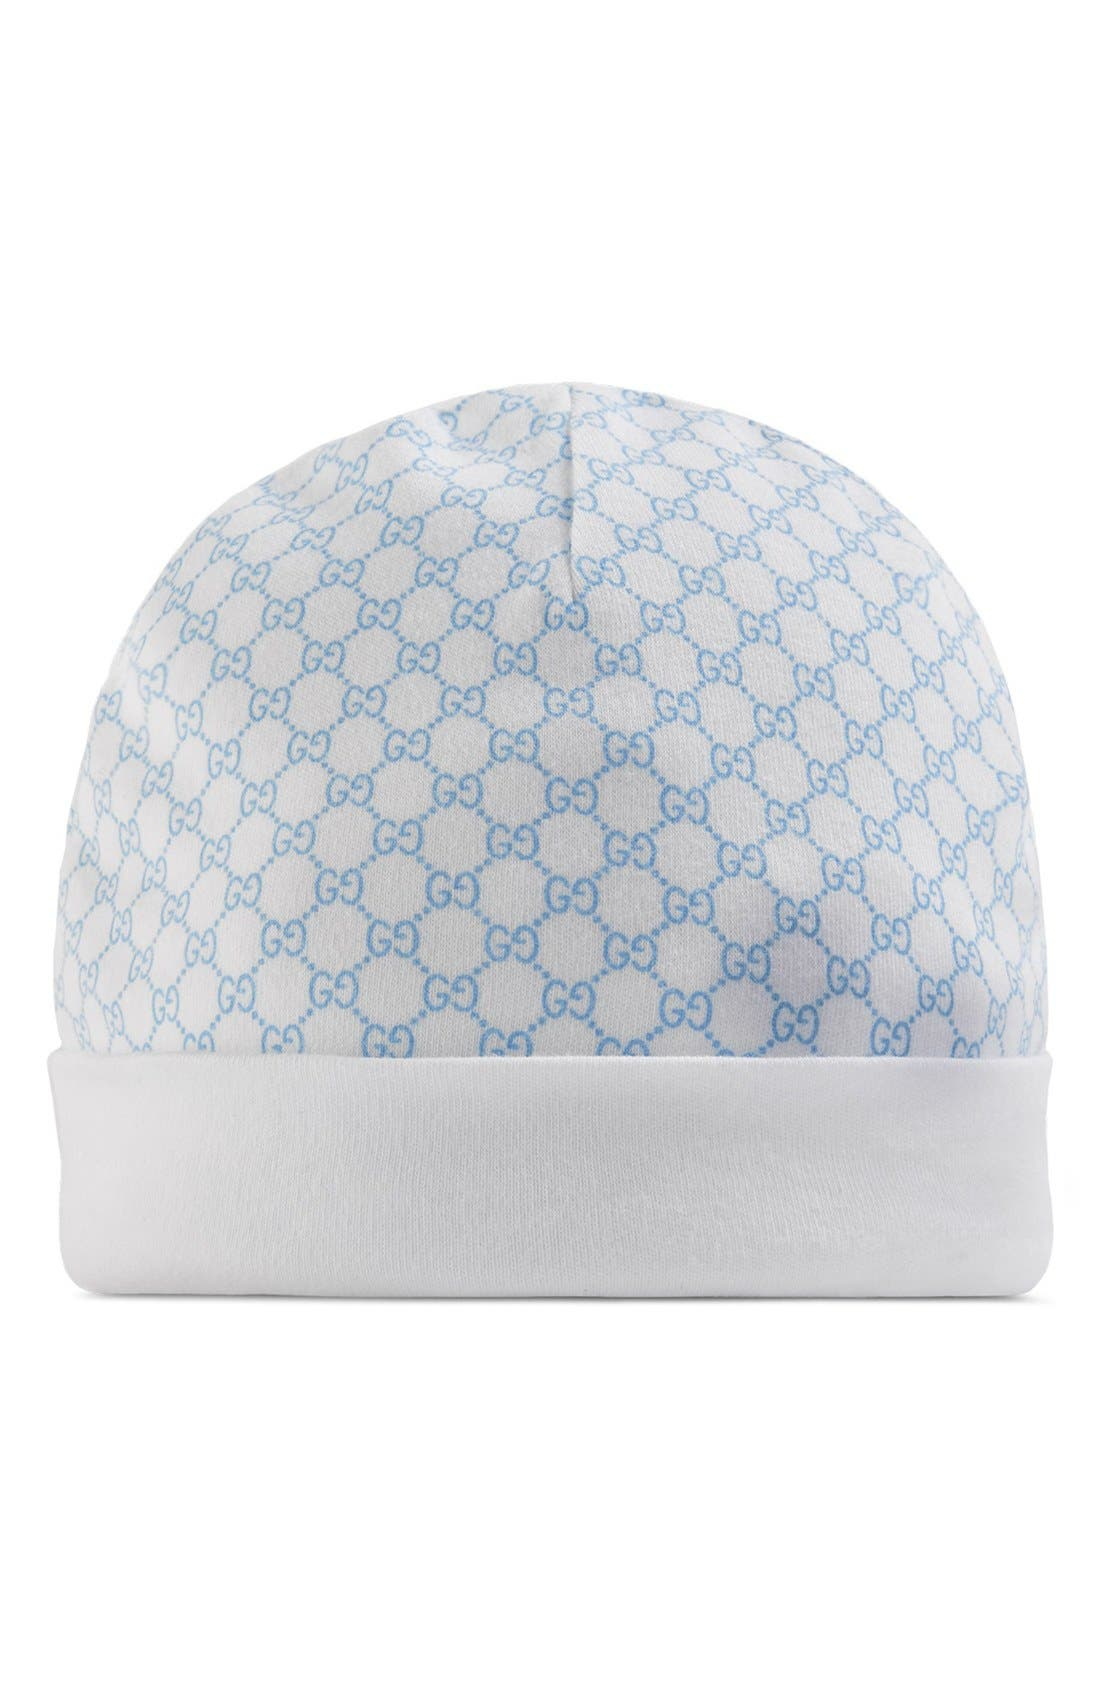 Alternate Image 1 Selected - Gucci Logo Knit Hat (Baby Boys)